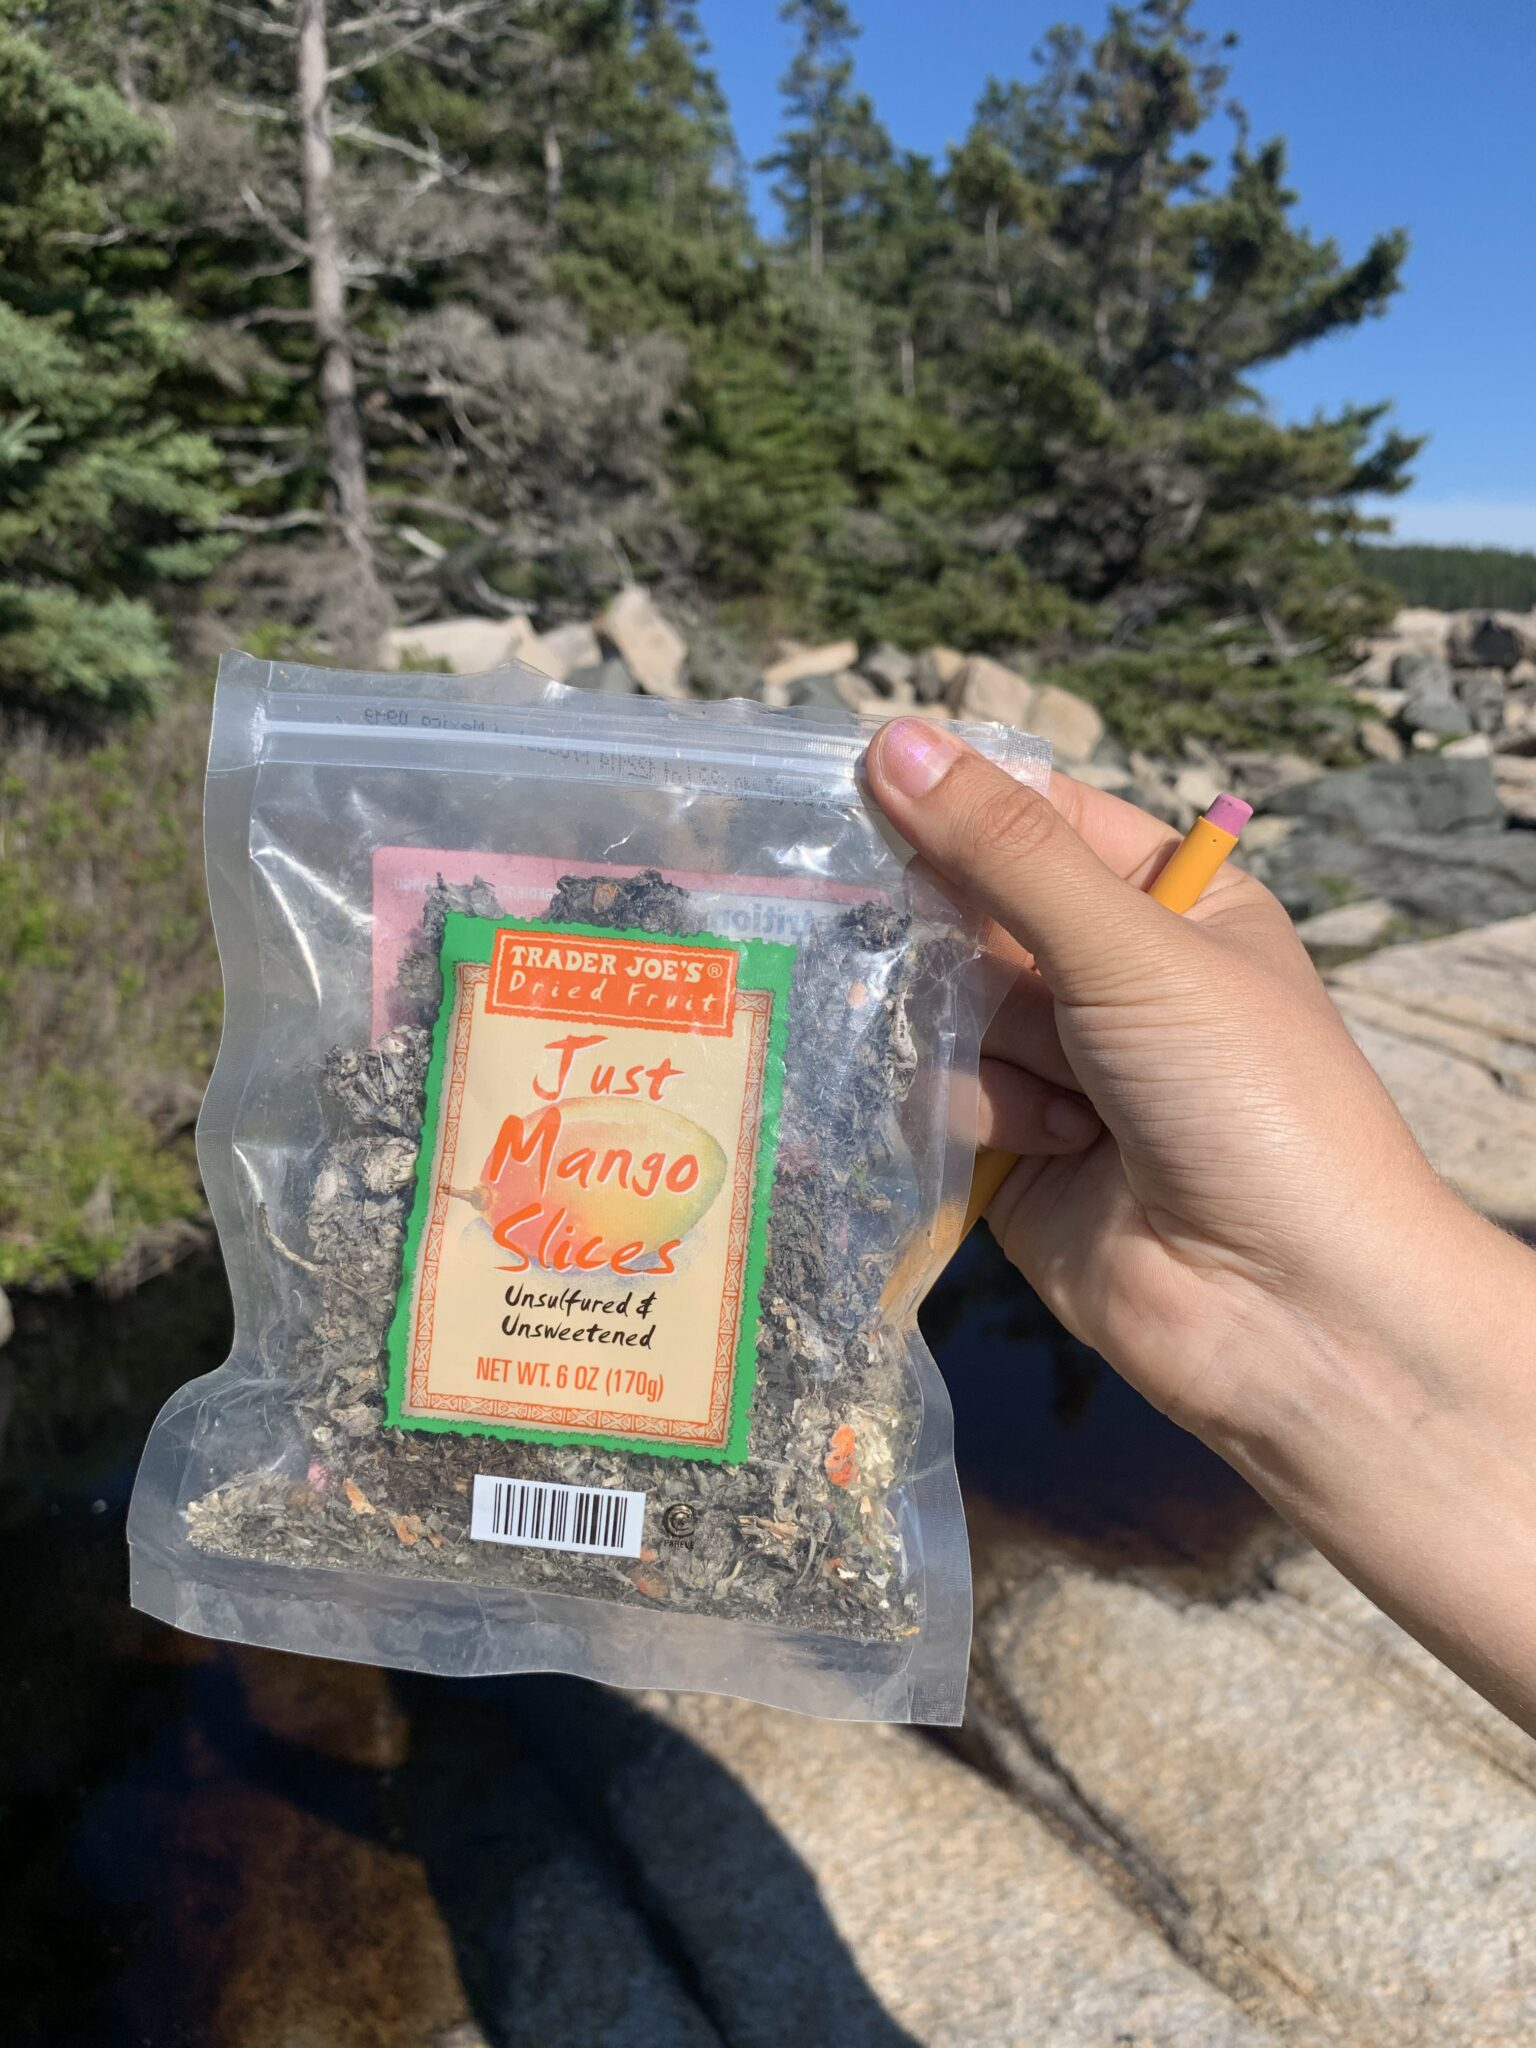 A person's hand holds a bag of Just Mango Slices with trees and rocks in background